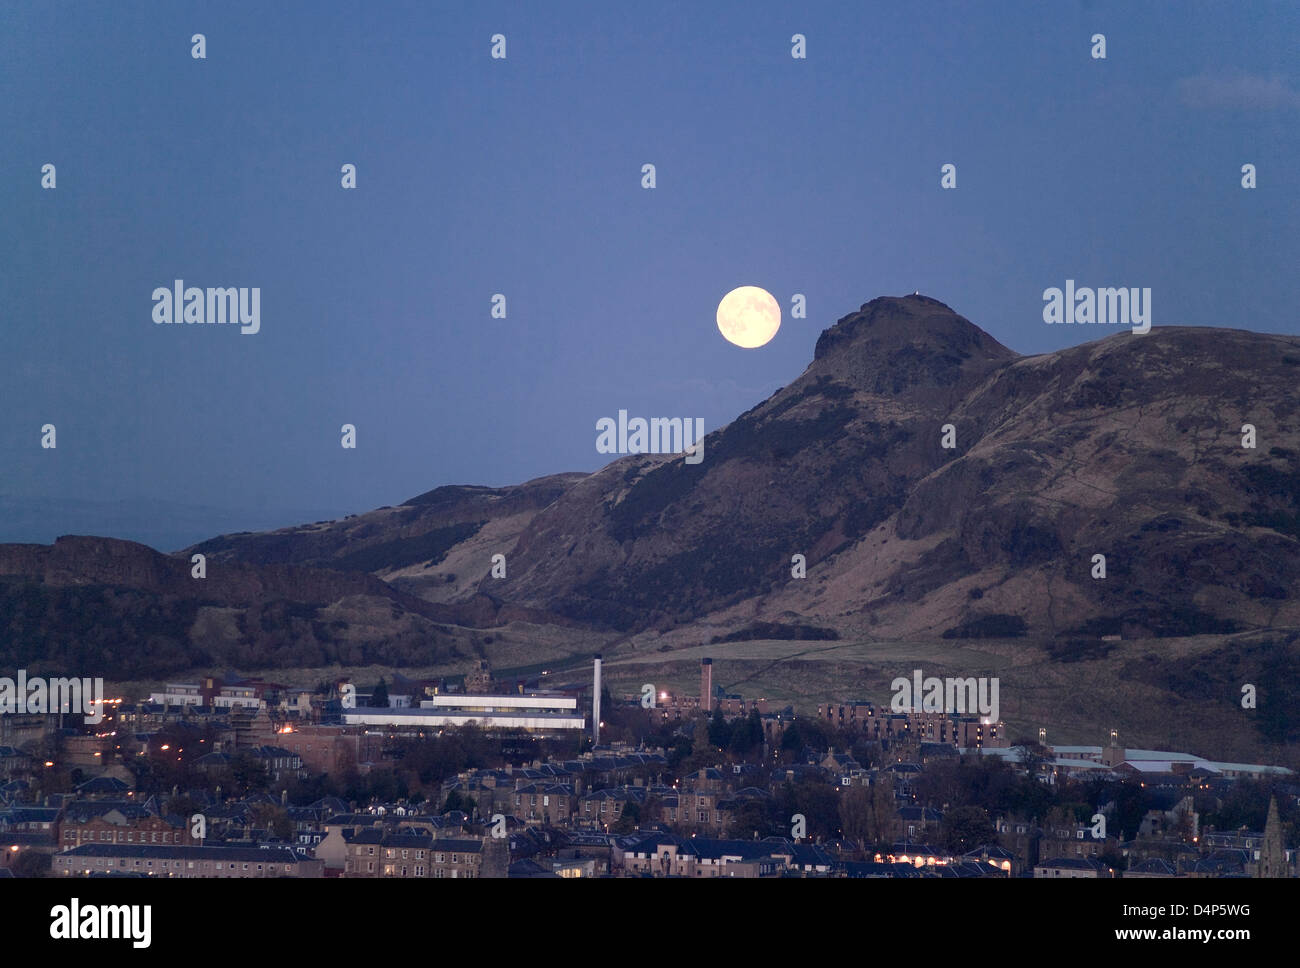 dusk view from blackford hill across city by newington to arthur's seat with moonrise and commonwealth pool - Stock Image